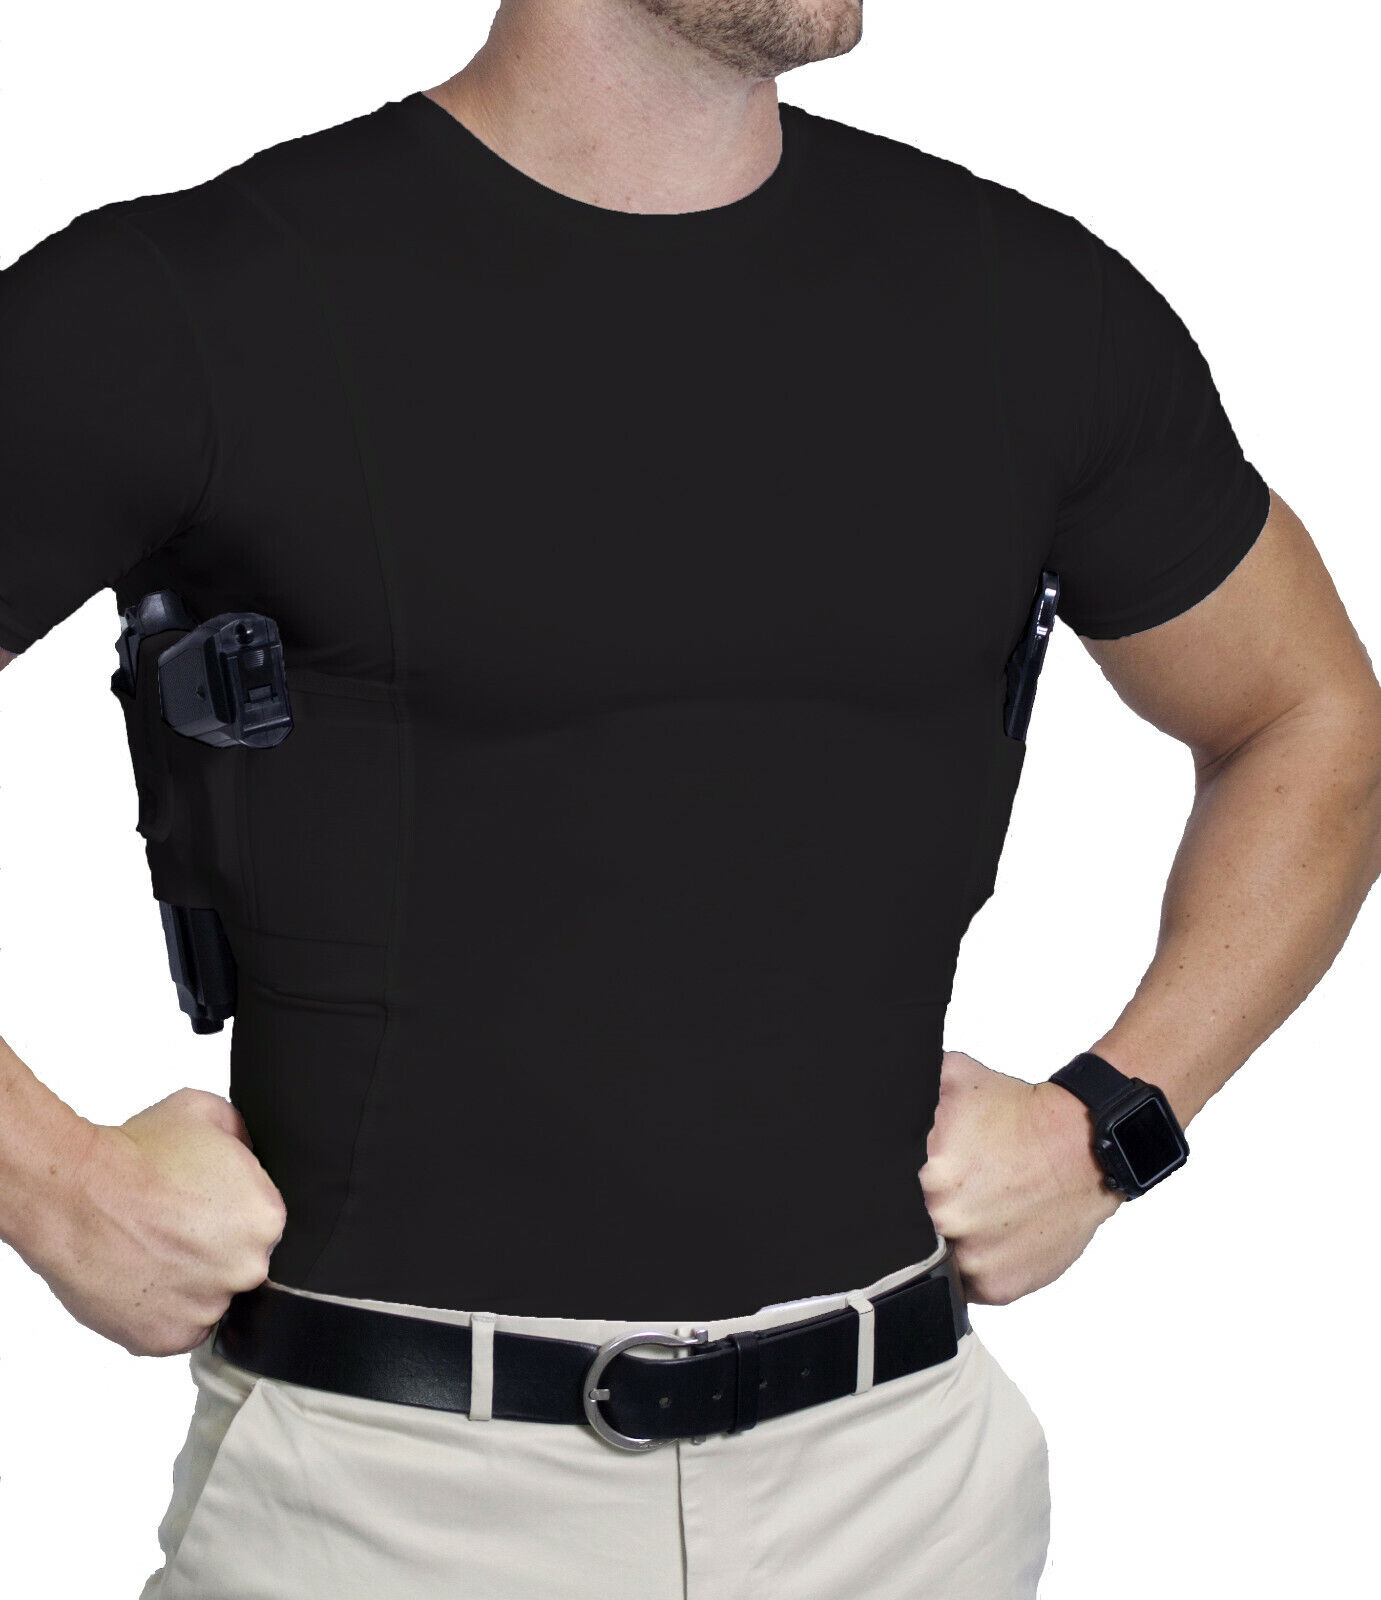 AC UNDERCOVER  Crew Neck Shirt Concealed Carry Clothing Hols